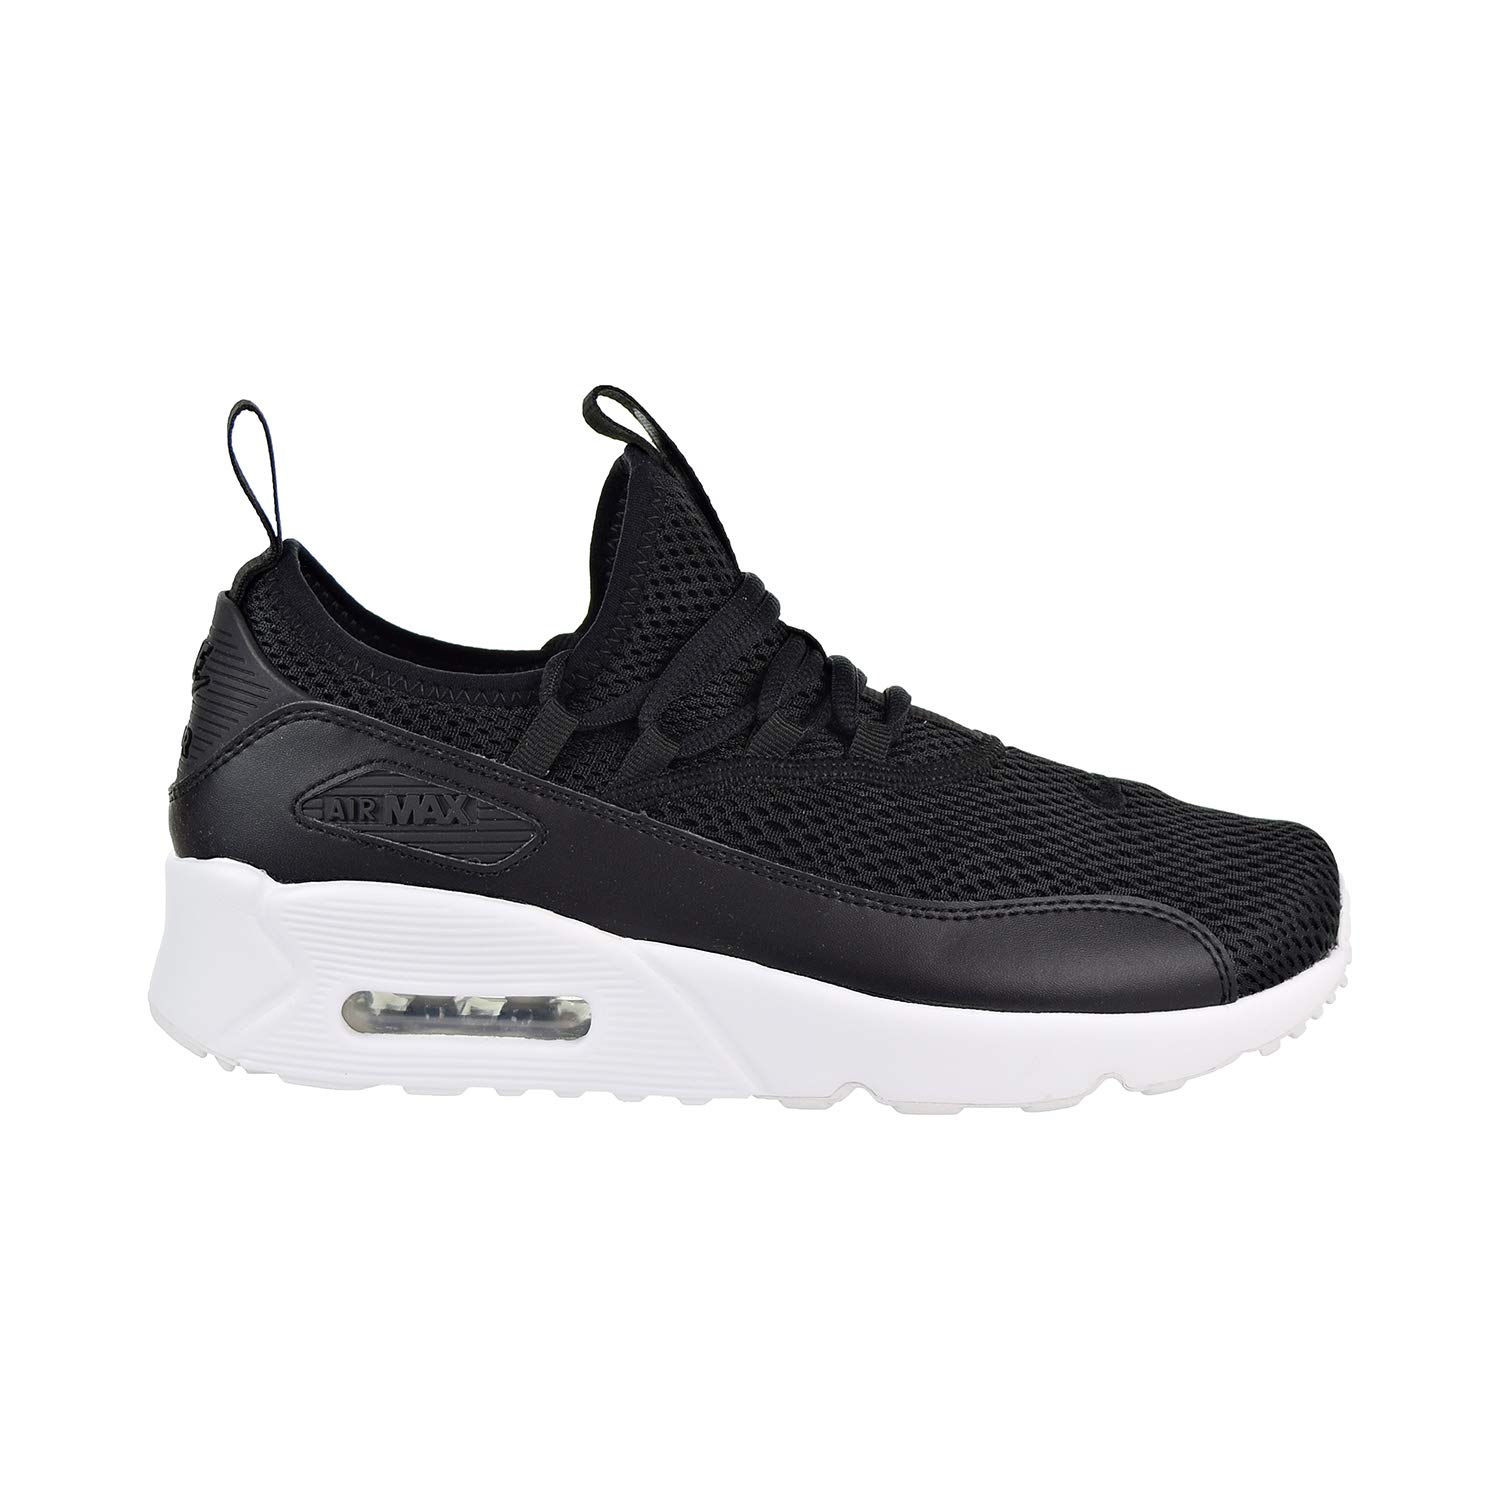 9484a84fb0f8f Nike Air Max 90 EZ Grade School Synthetic Youth Trainers